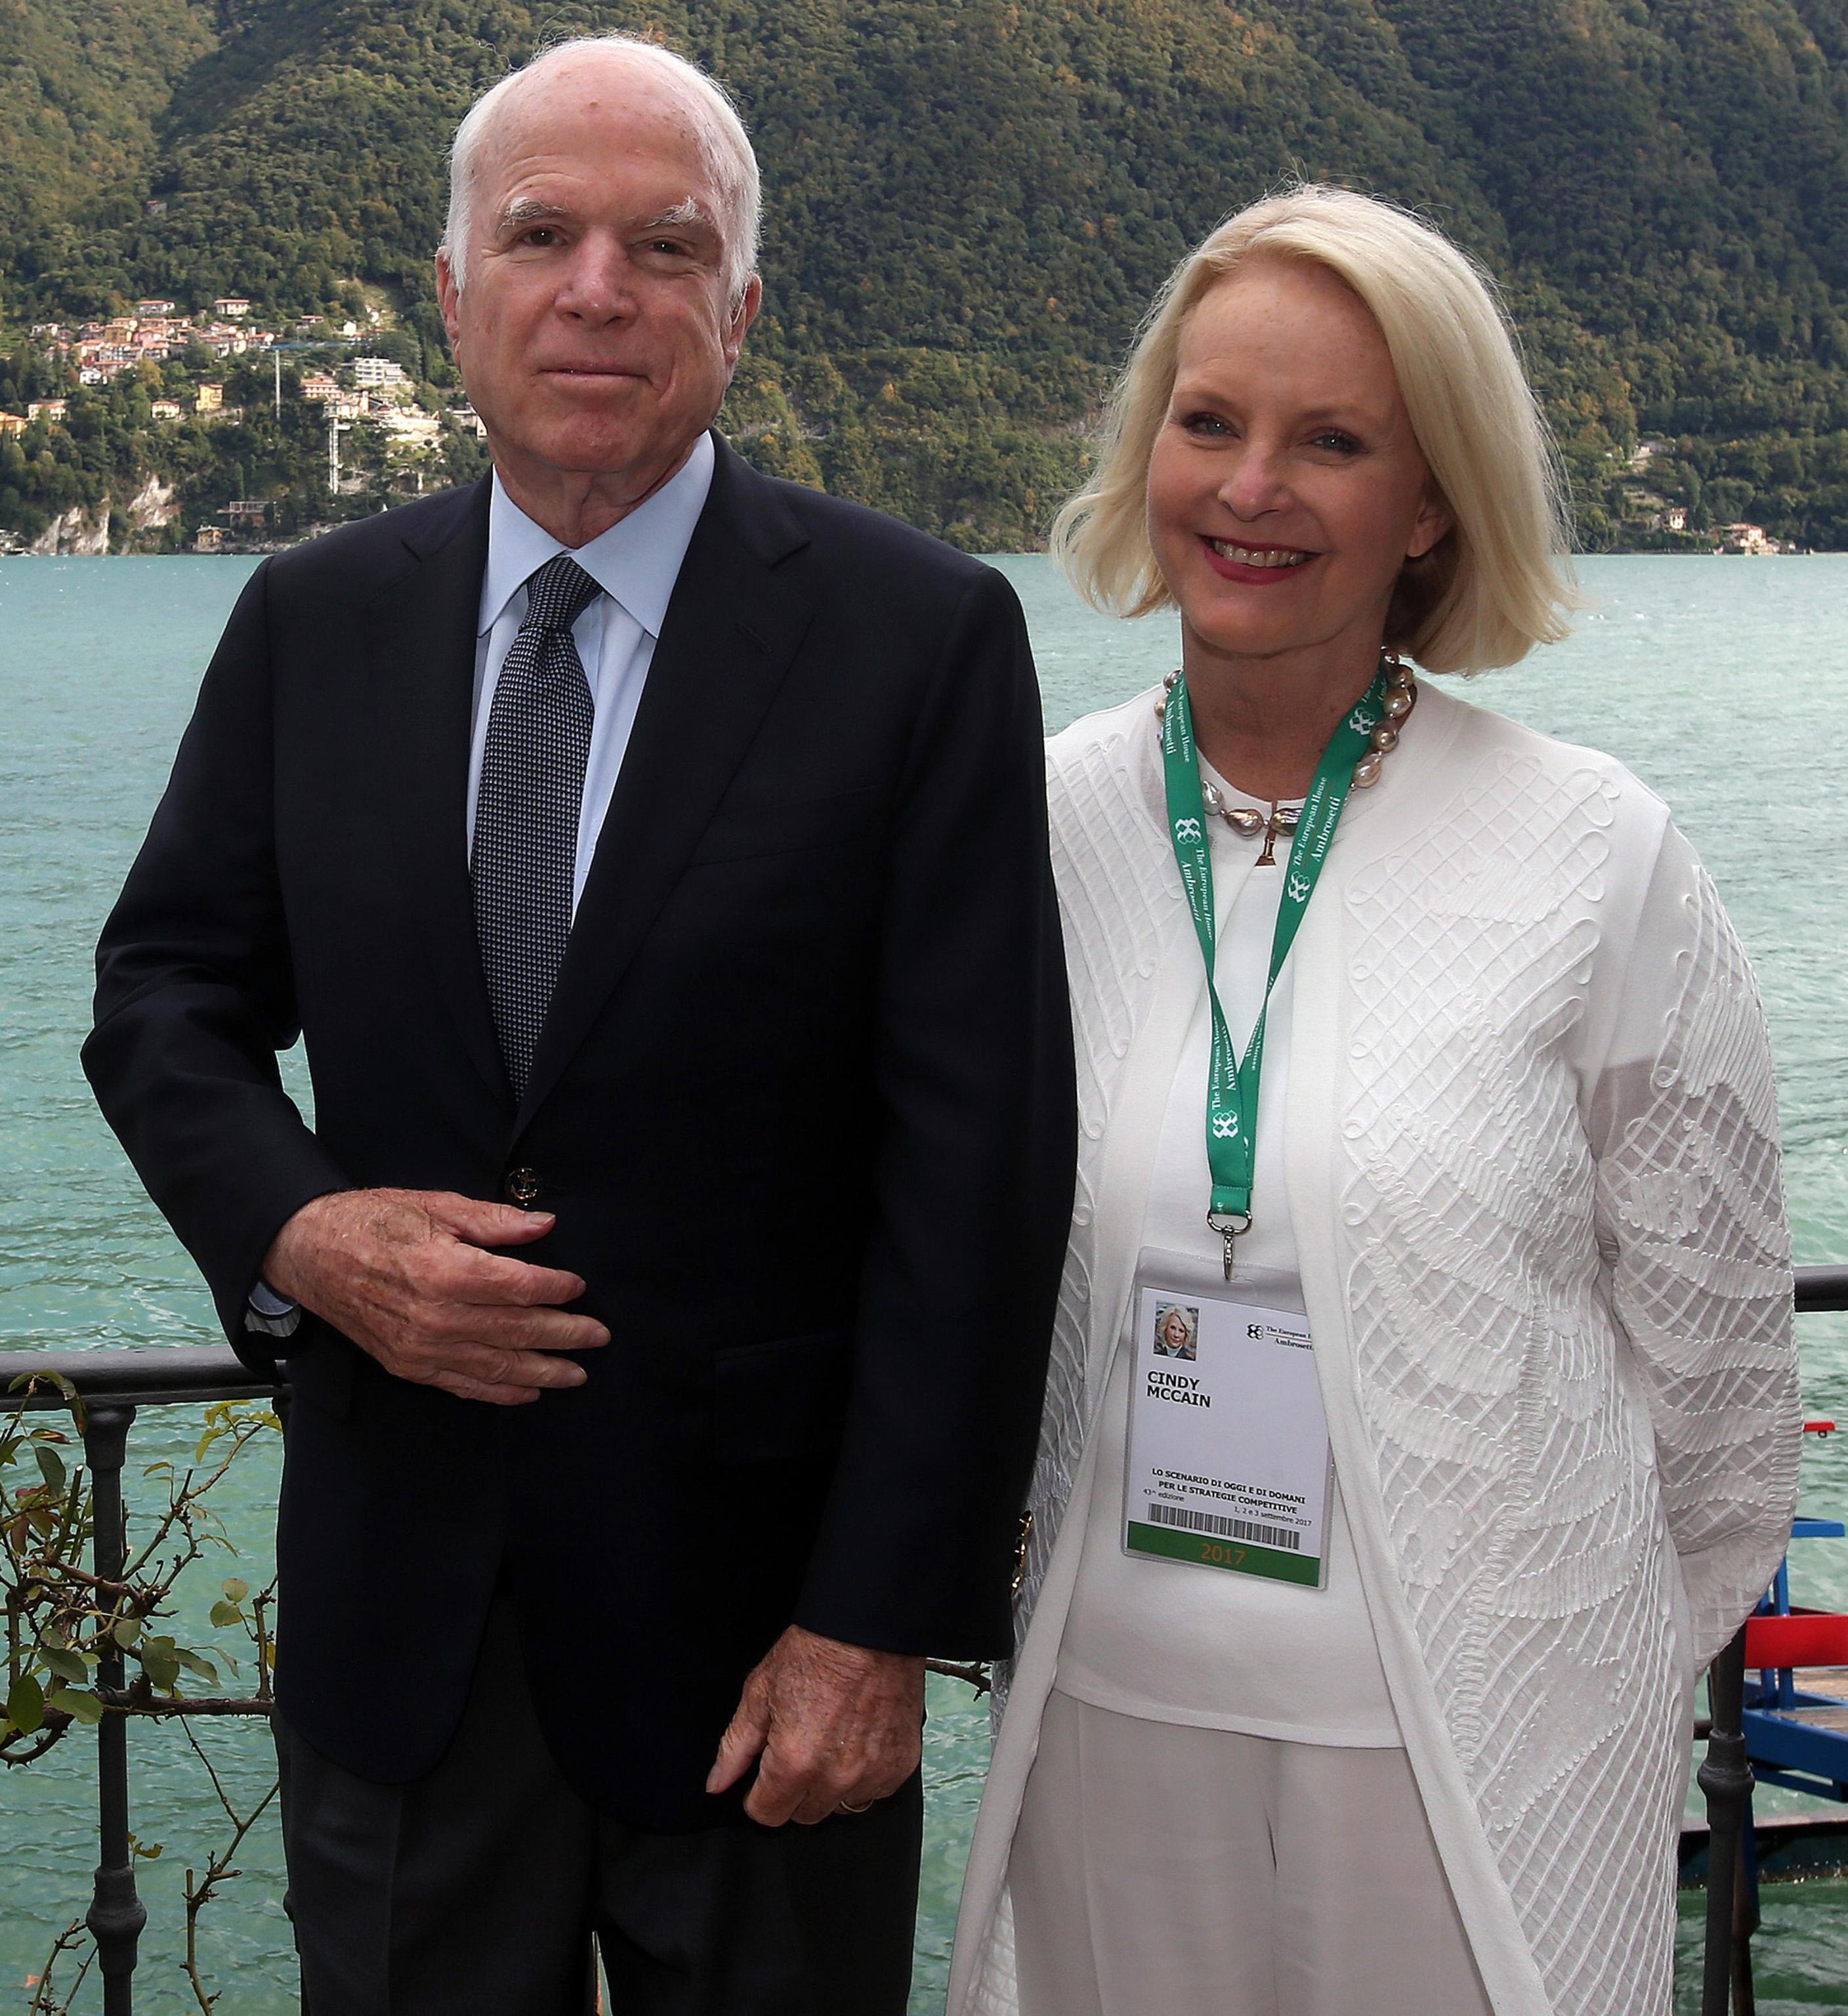 Carol Mccain: McCain Attends Italy Forum Before Congress Returns To Work